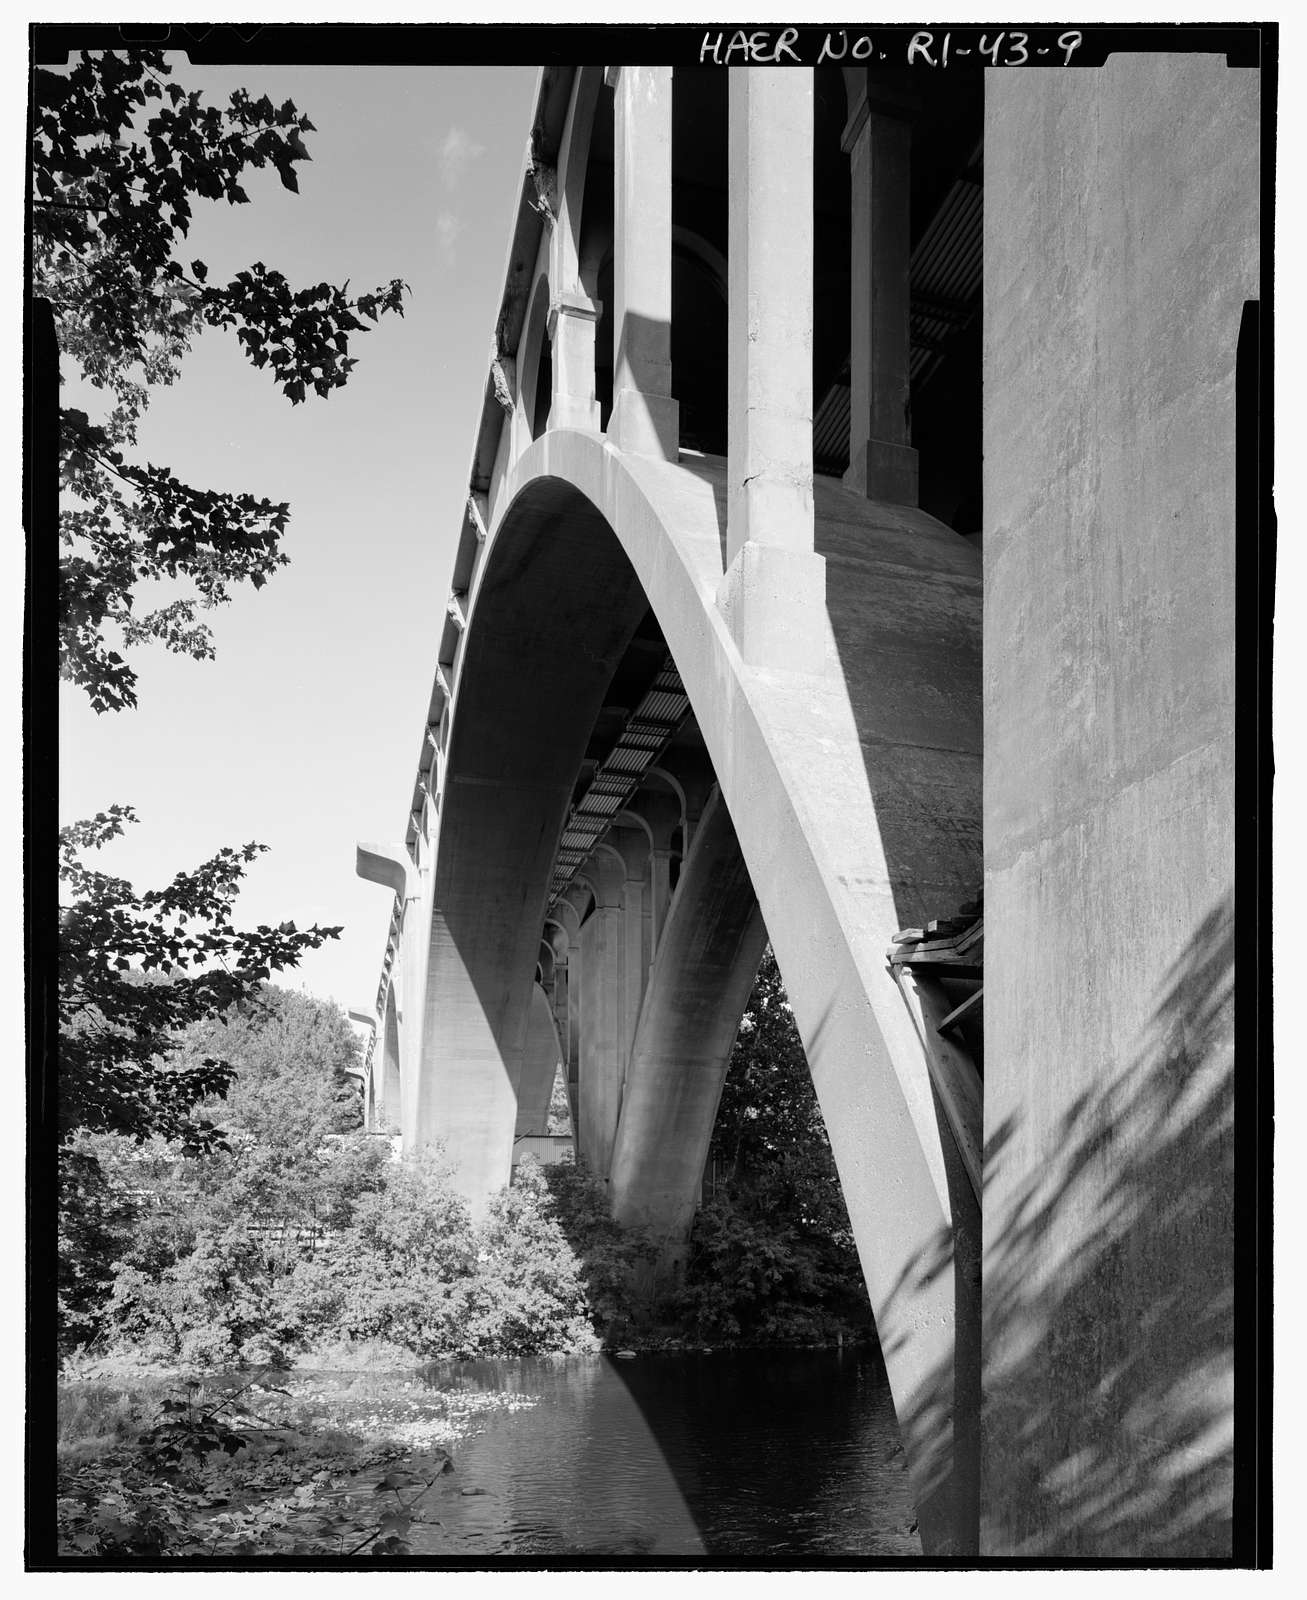 Ashton Viaduct, State Route 116 (Washington Highway) spanning Blackstone River, Blackstone Canal, & Providence & Worcester Railroad, Ashton, Providence County, RI